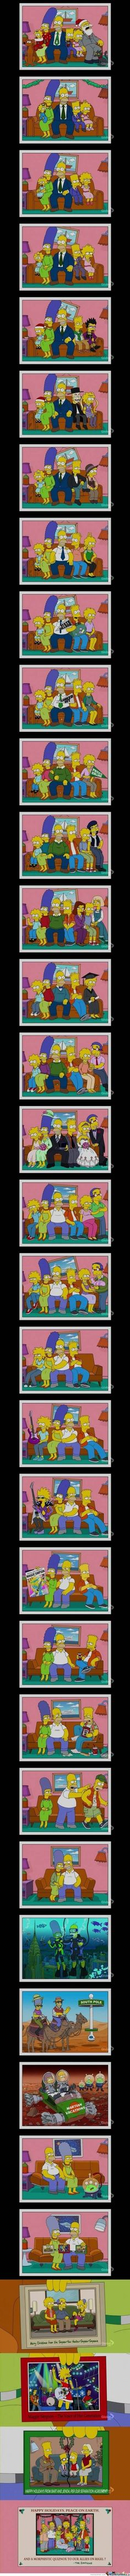 A Simpsons timeline.